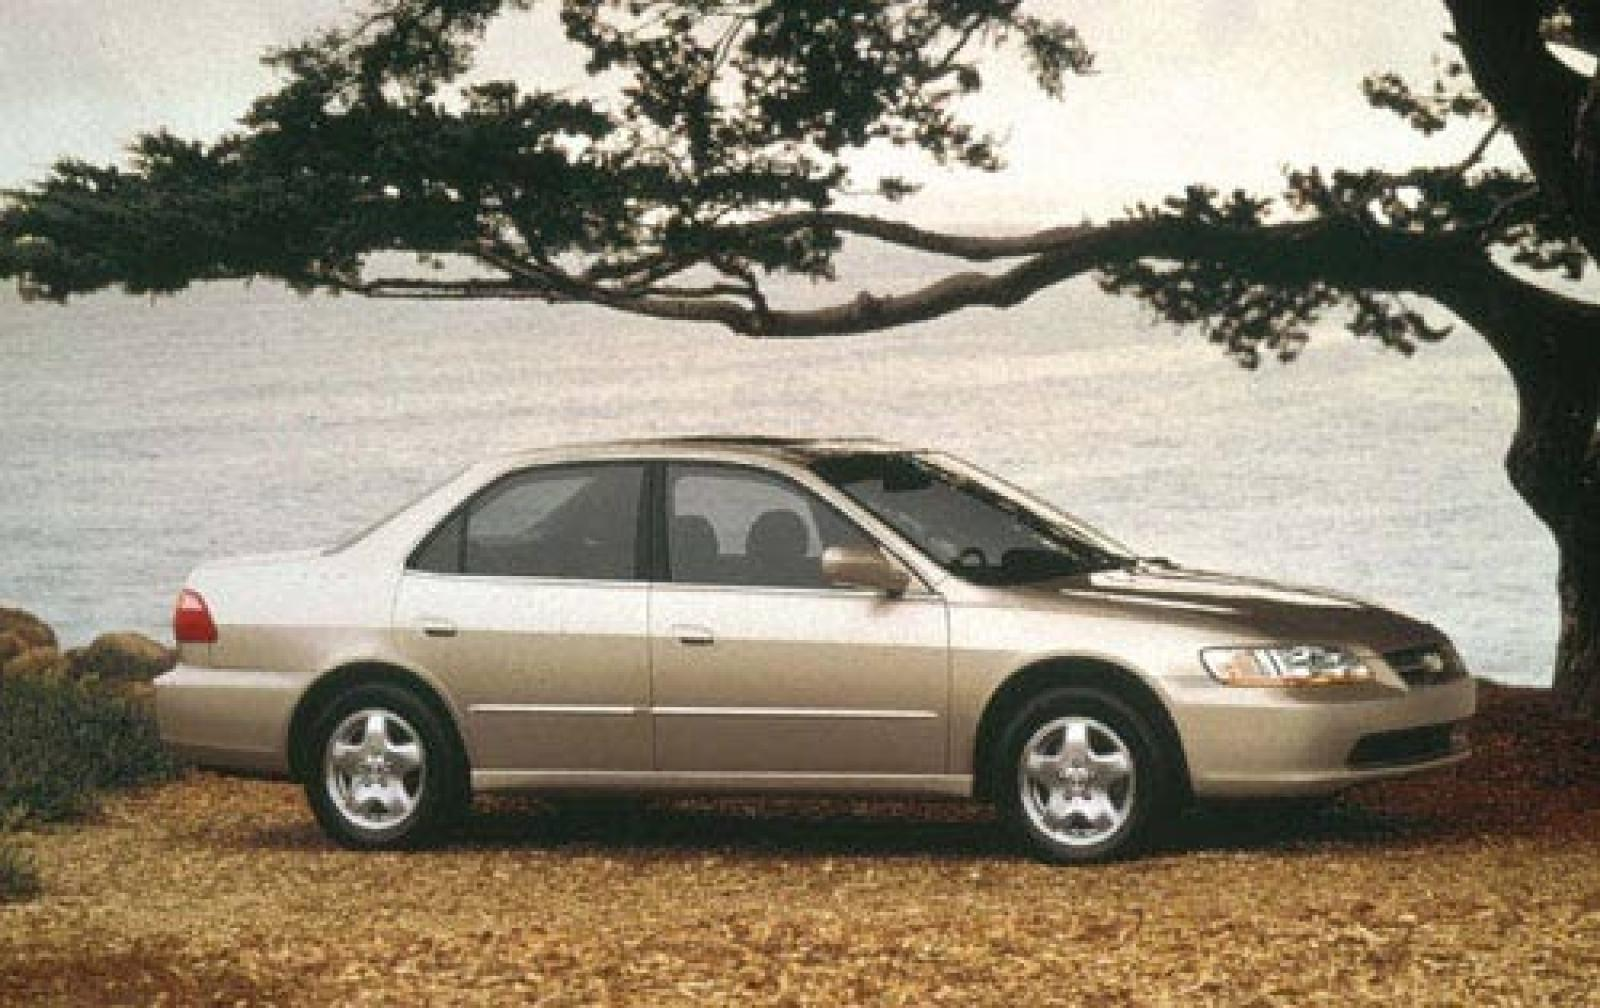 1999 honda accord information and photos zombiedrive. Black Bedroom Furniture Sets. Home Design Ideas